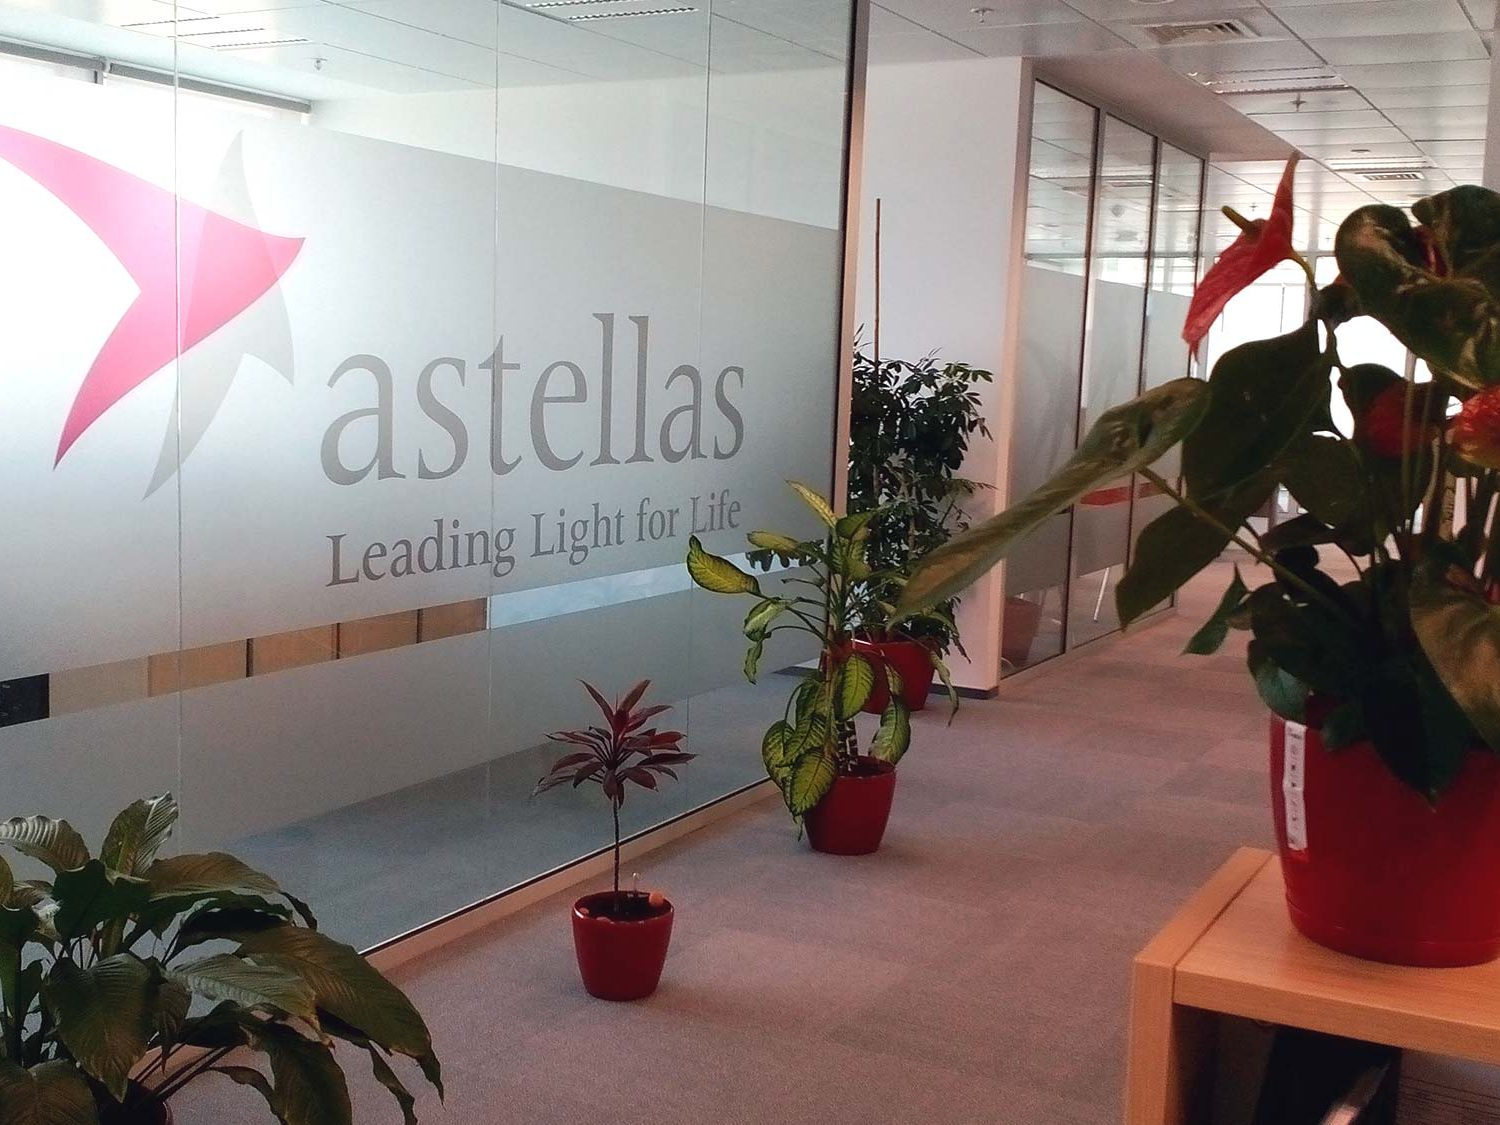 Glass walls frosted and decorated with the astellas logo